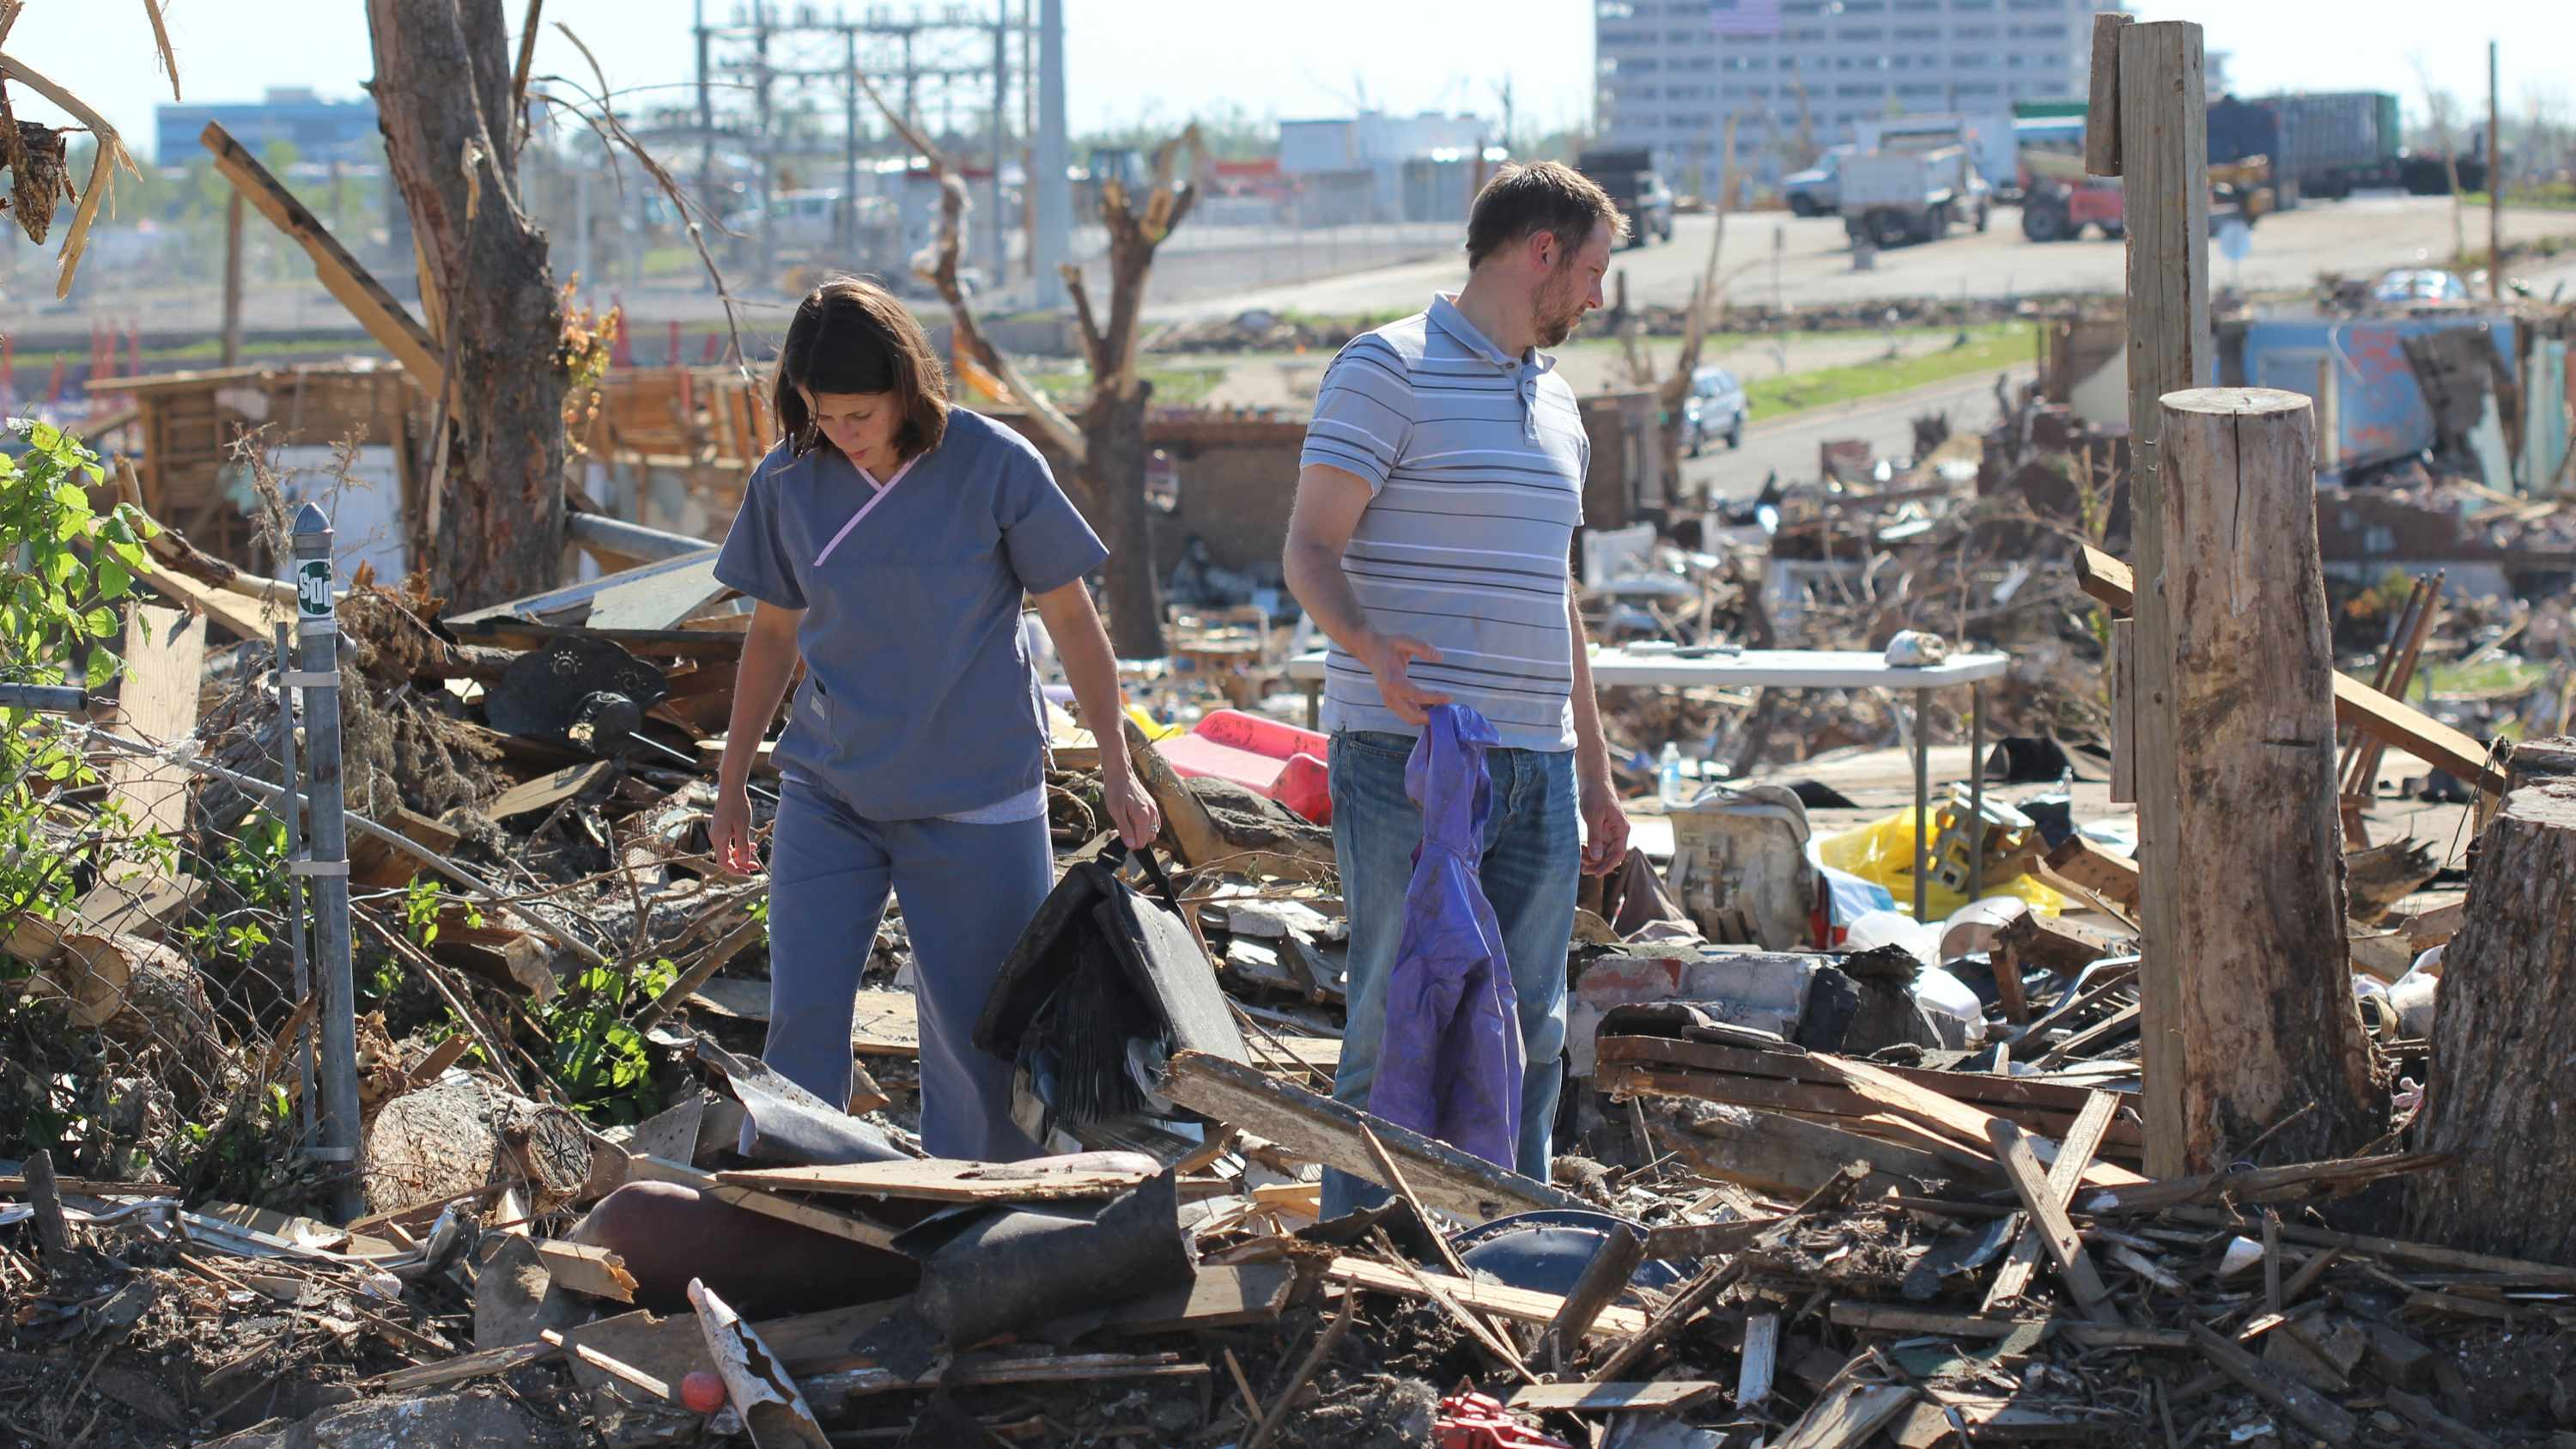 a young couple walking through debris from their home after a storm